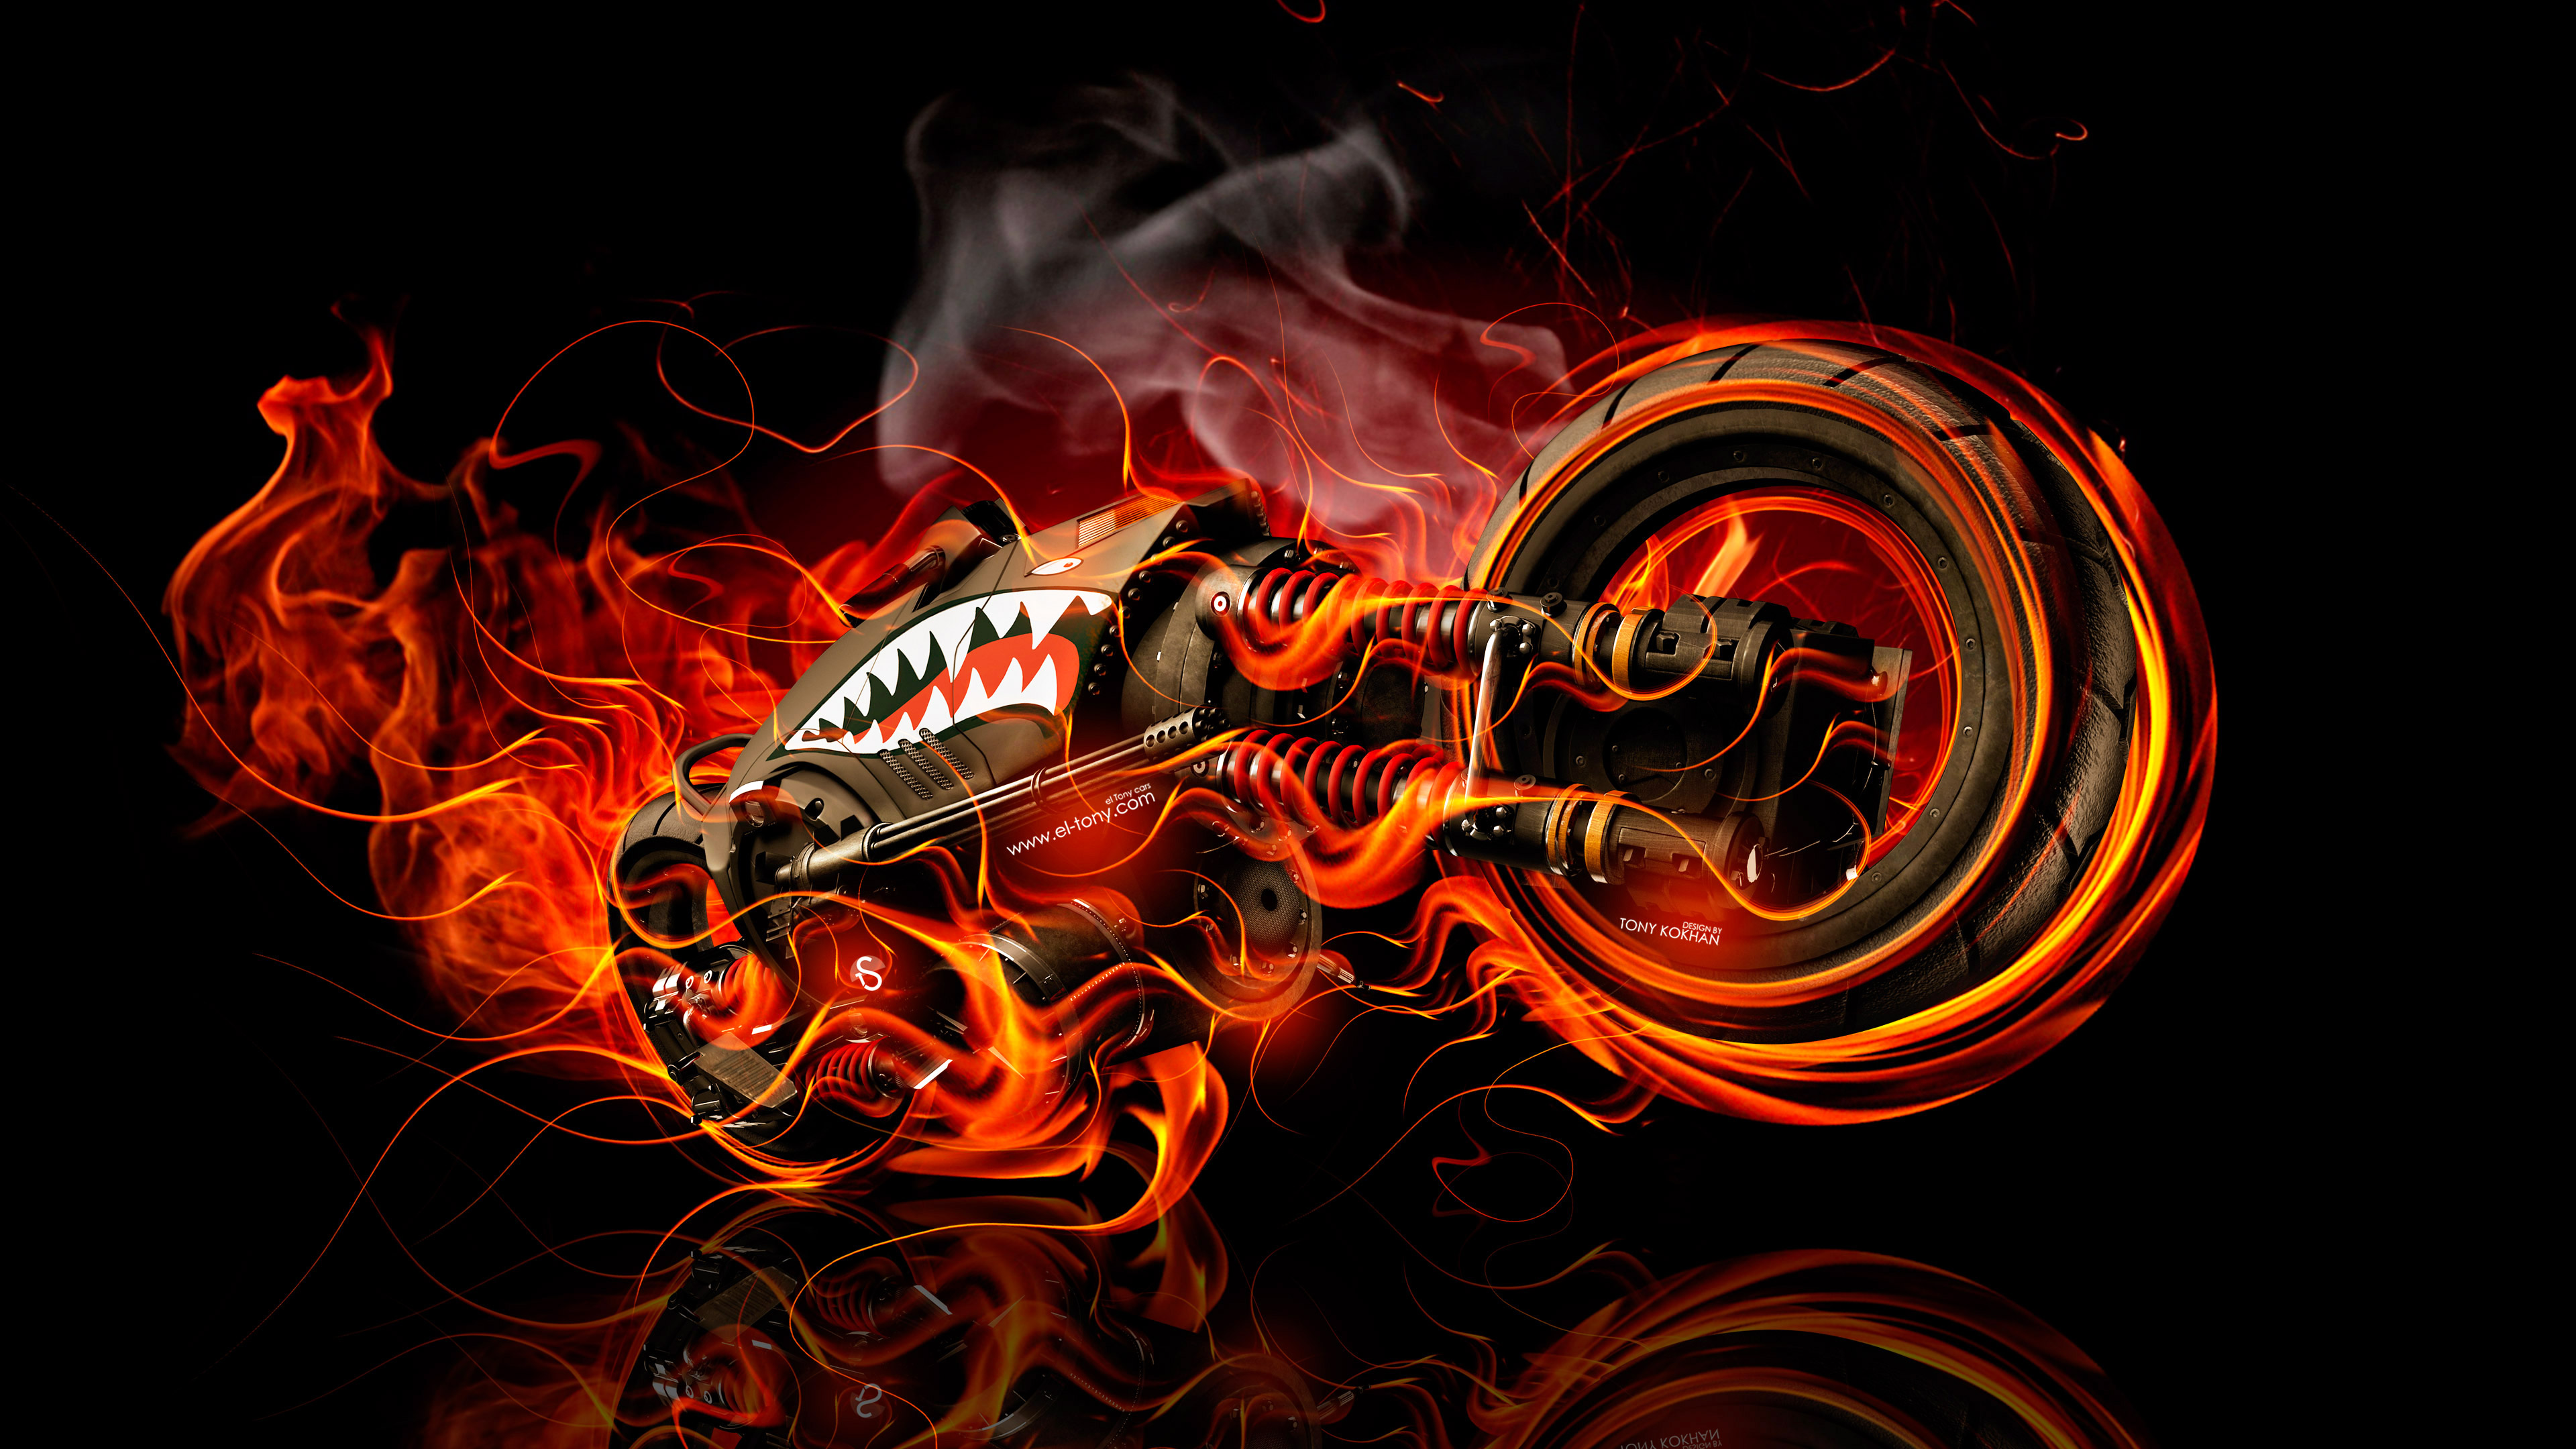 ... Moto Gun Super Fire Flame Abstract Bike 2016 Wallpapers 4K